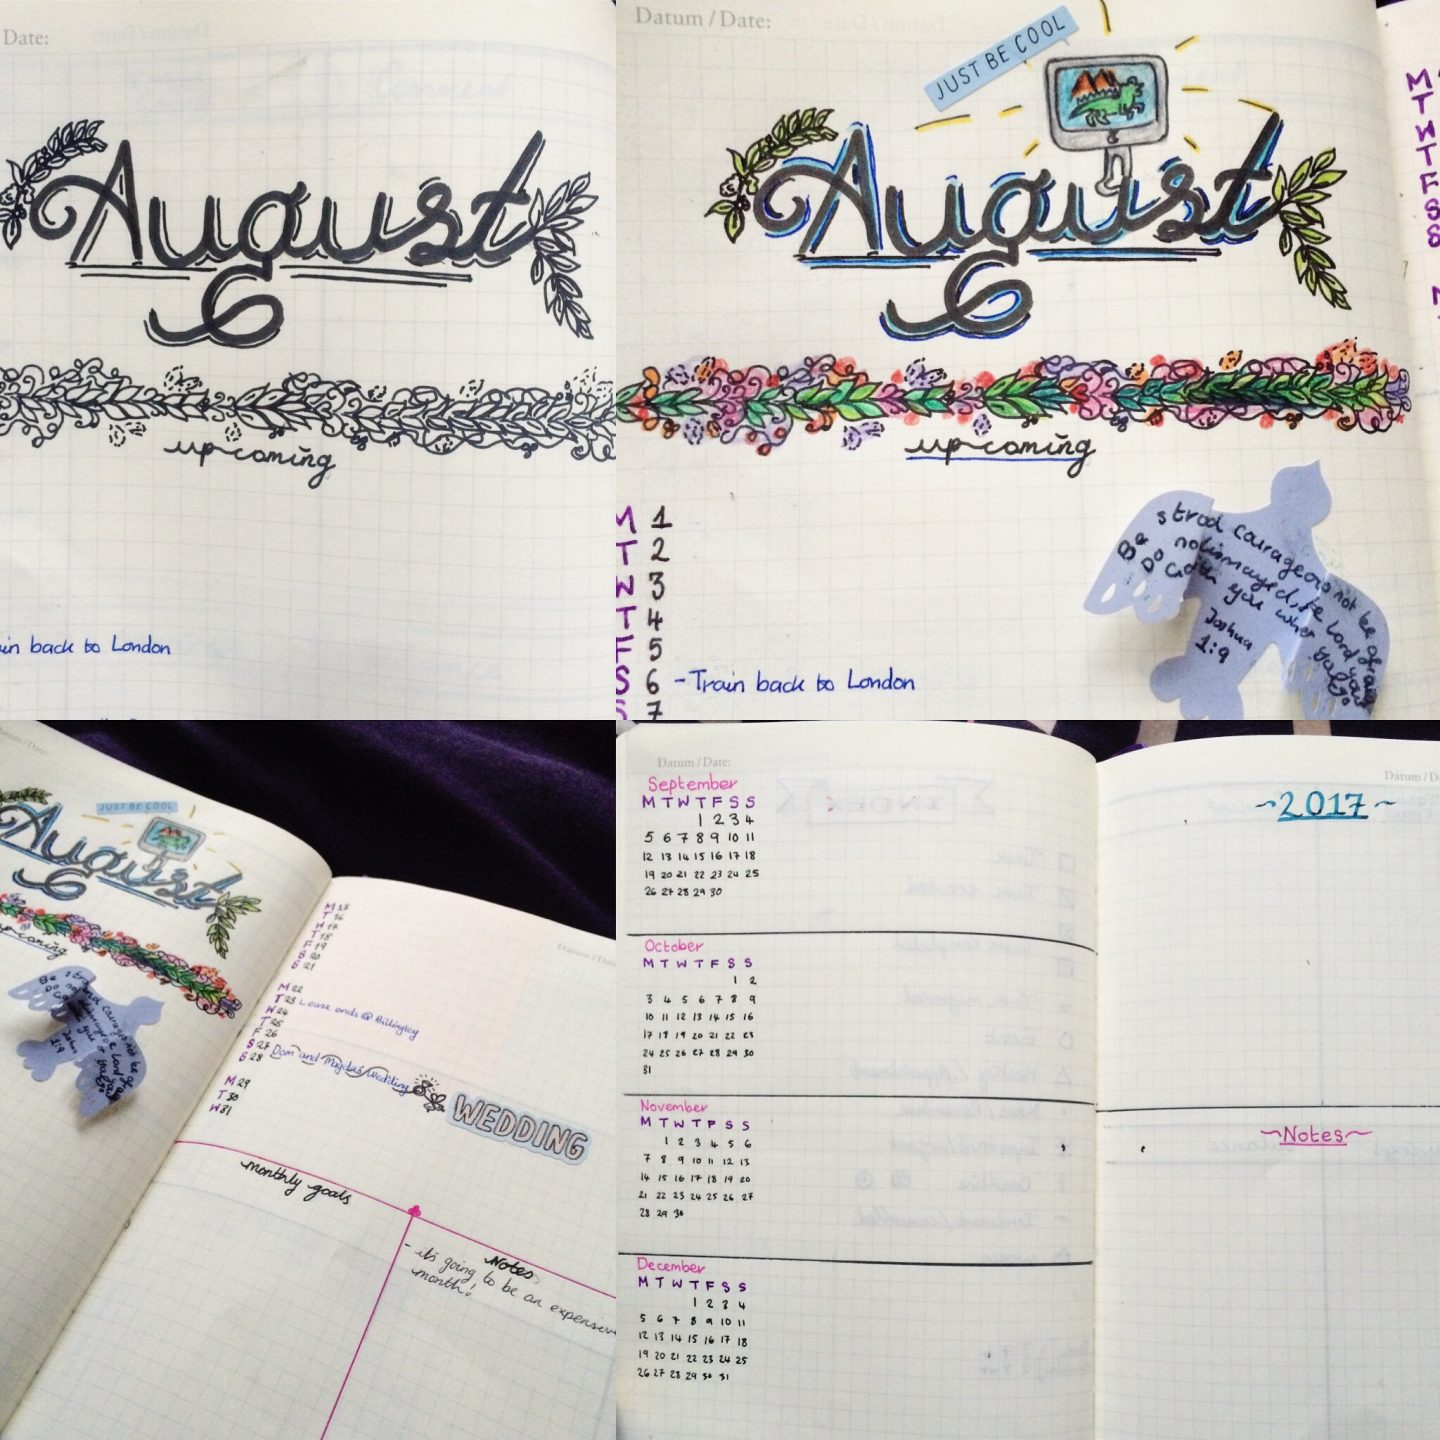 Getting Things Done with the Bullet Journal